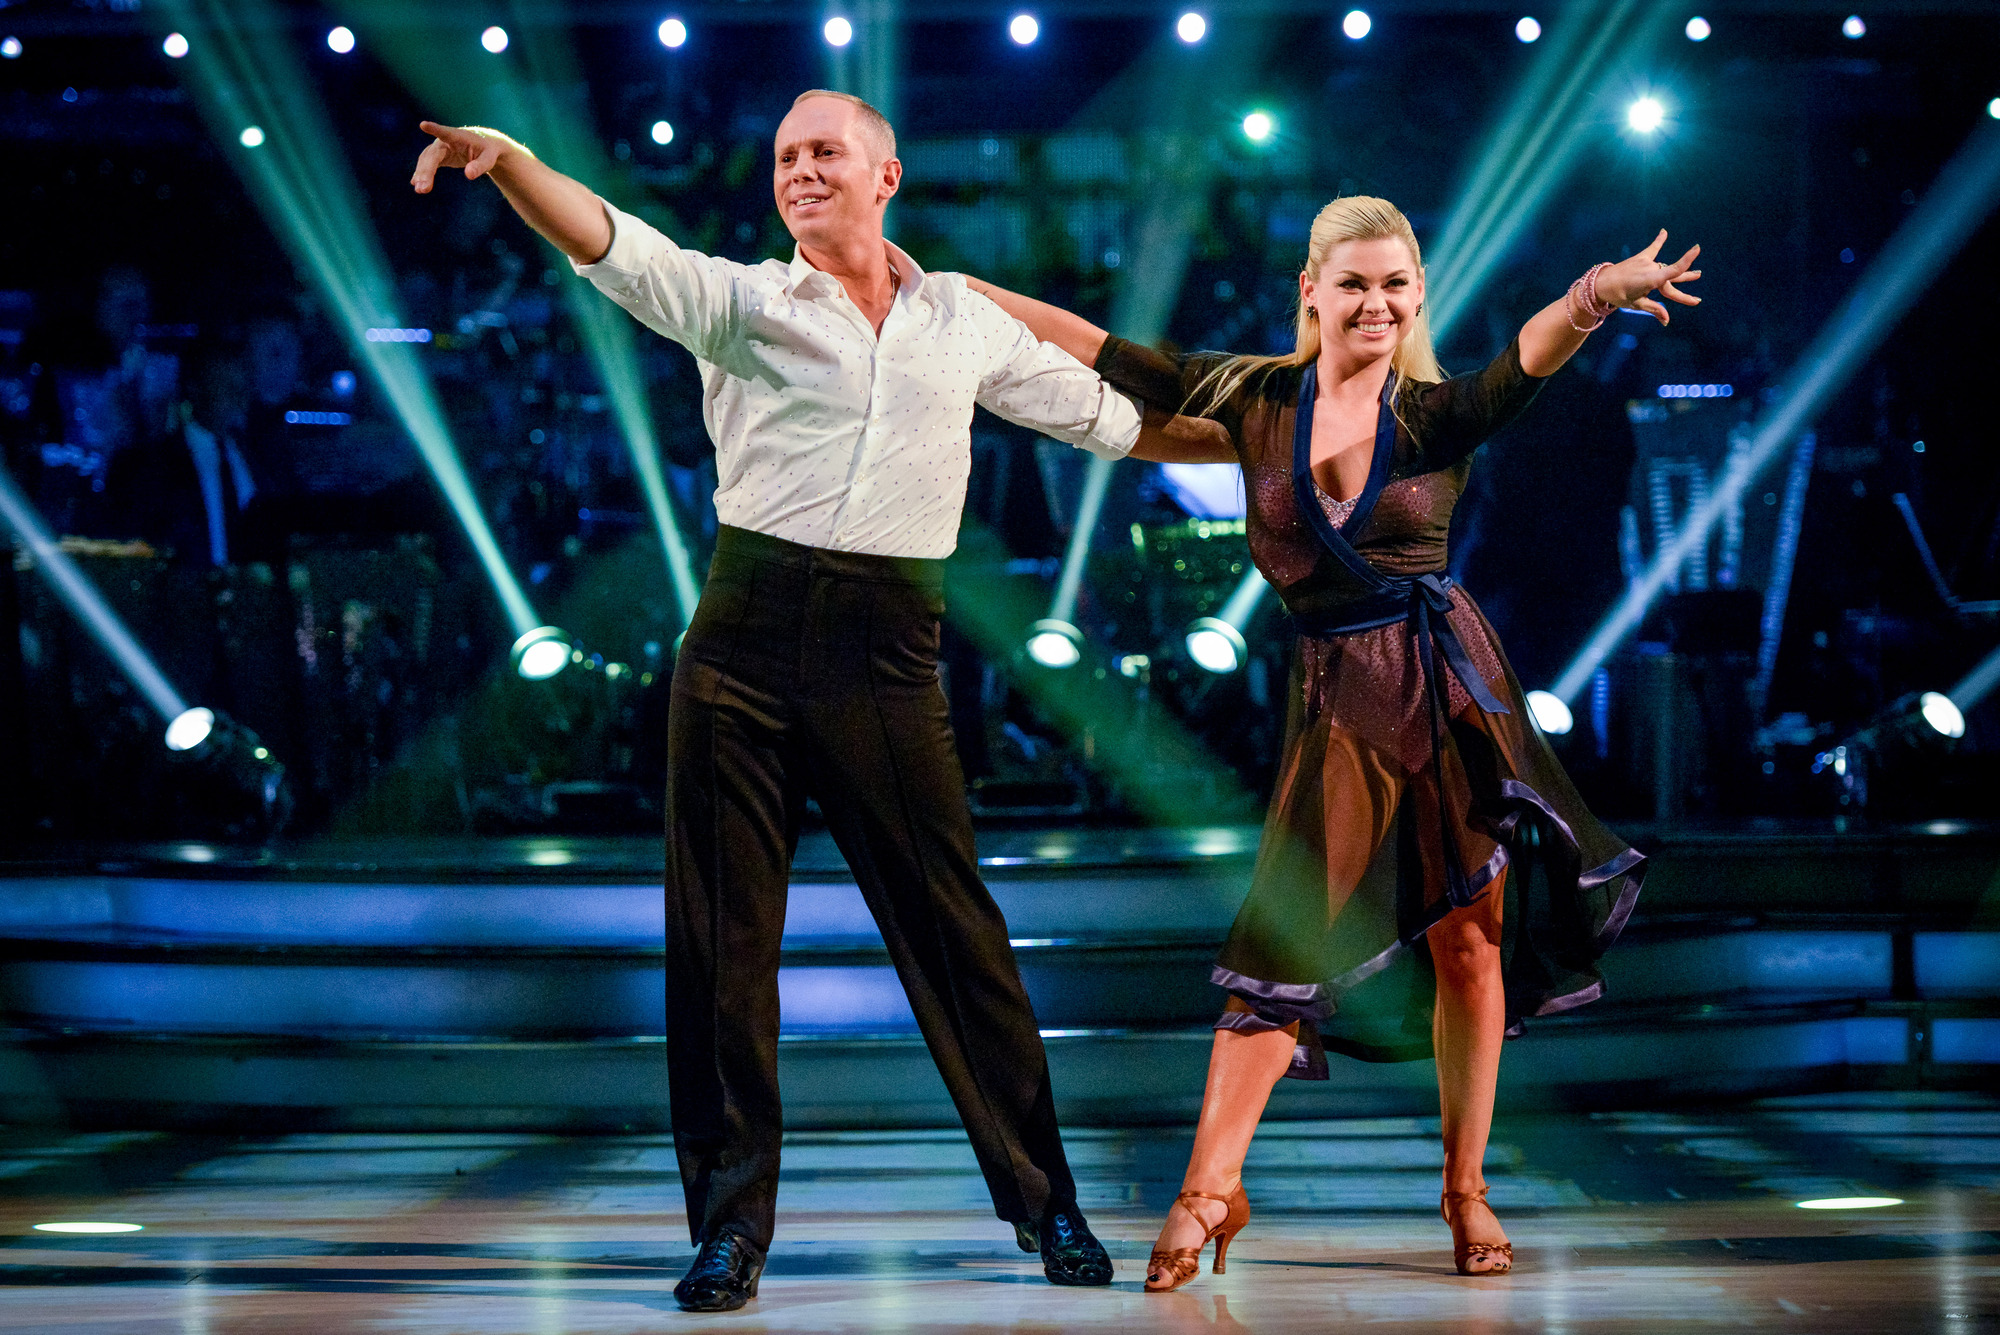 Judge Rinder has confirmed he'll join the Manchester leg of the Strictly tour (Picture: BBC)